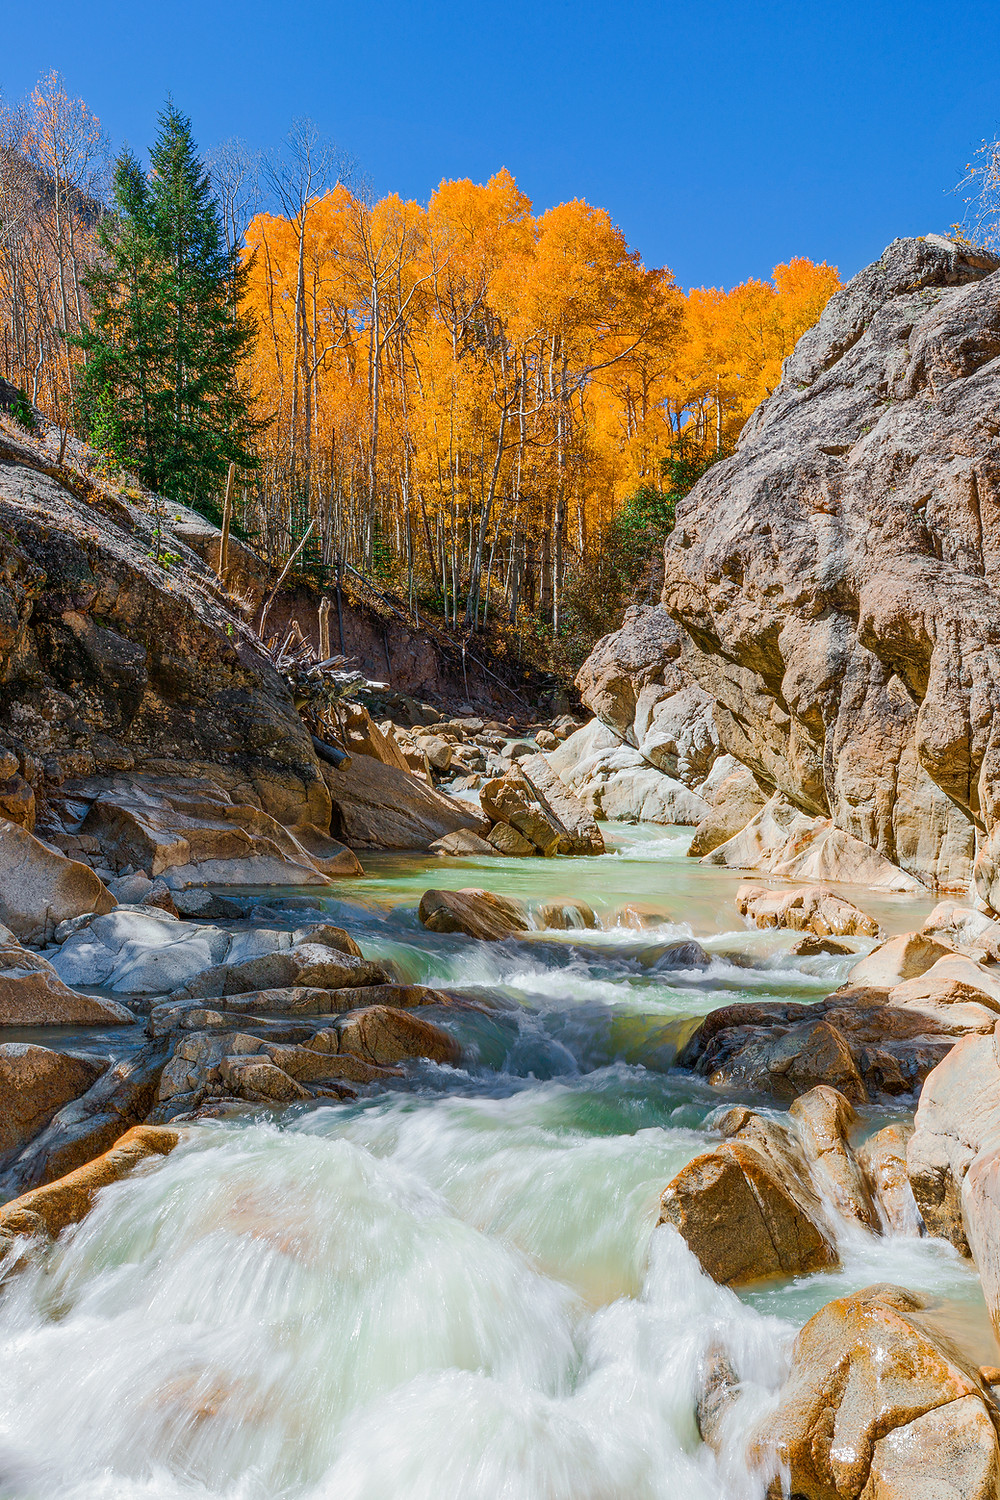 A Colorado creek cuts through a gorge surrounded by gold aspen trees on a cloudless afternoon